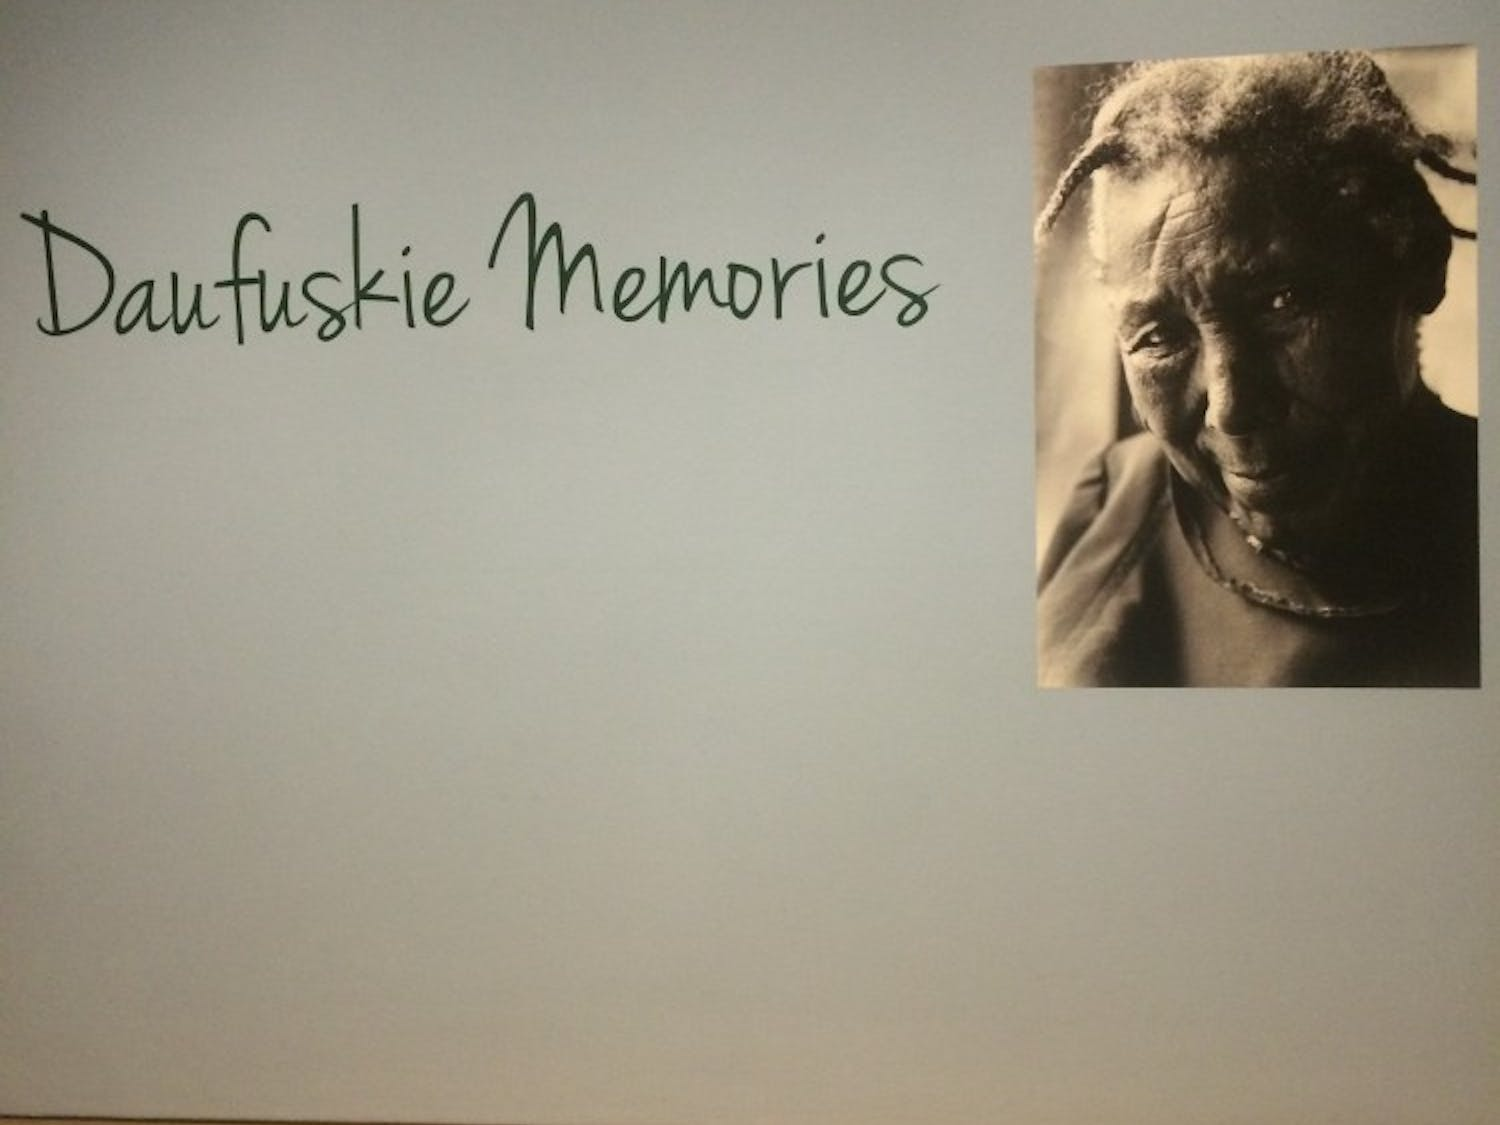 """The """"Daufuskie Memories"""" exhibit at the Columbia Museum of Artfeatures images that capture the long-preserved Gullah culture on Daufuski Island, SC."""